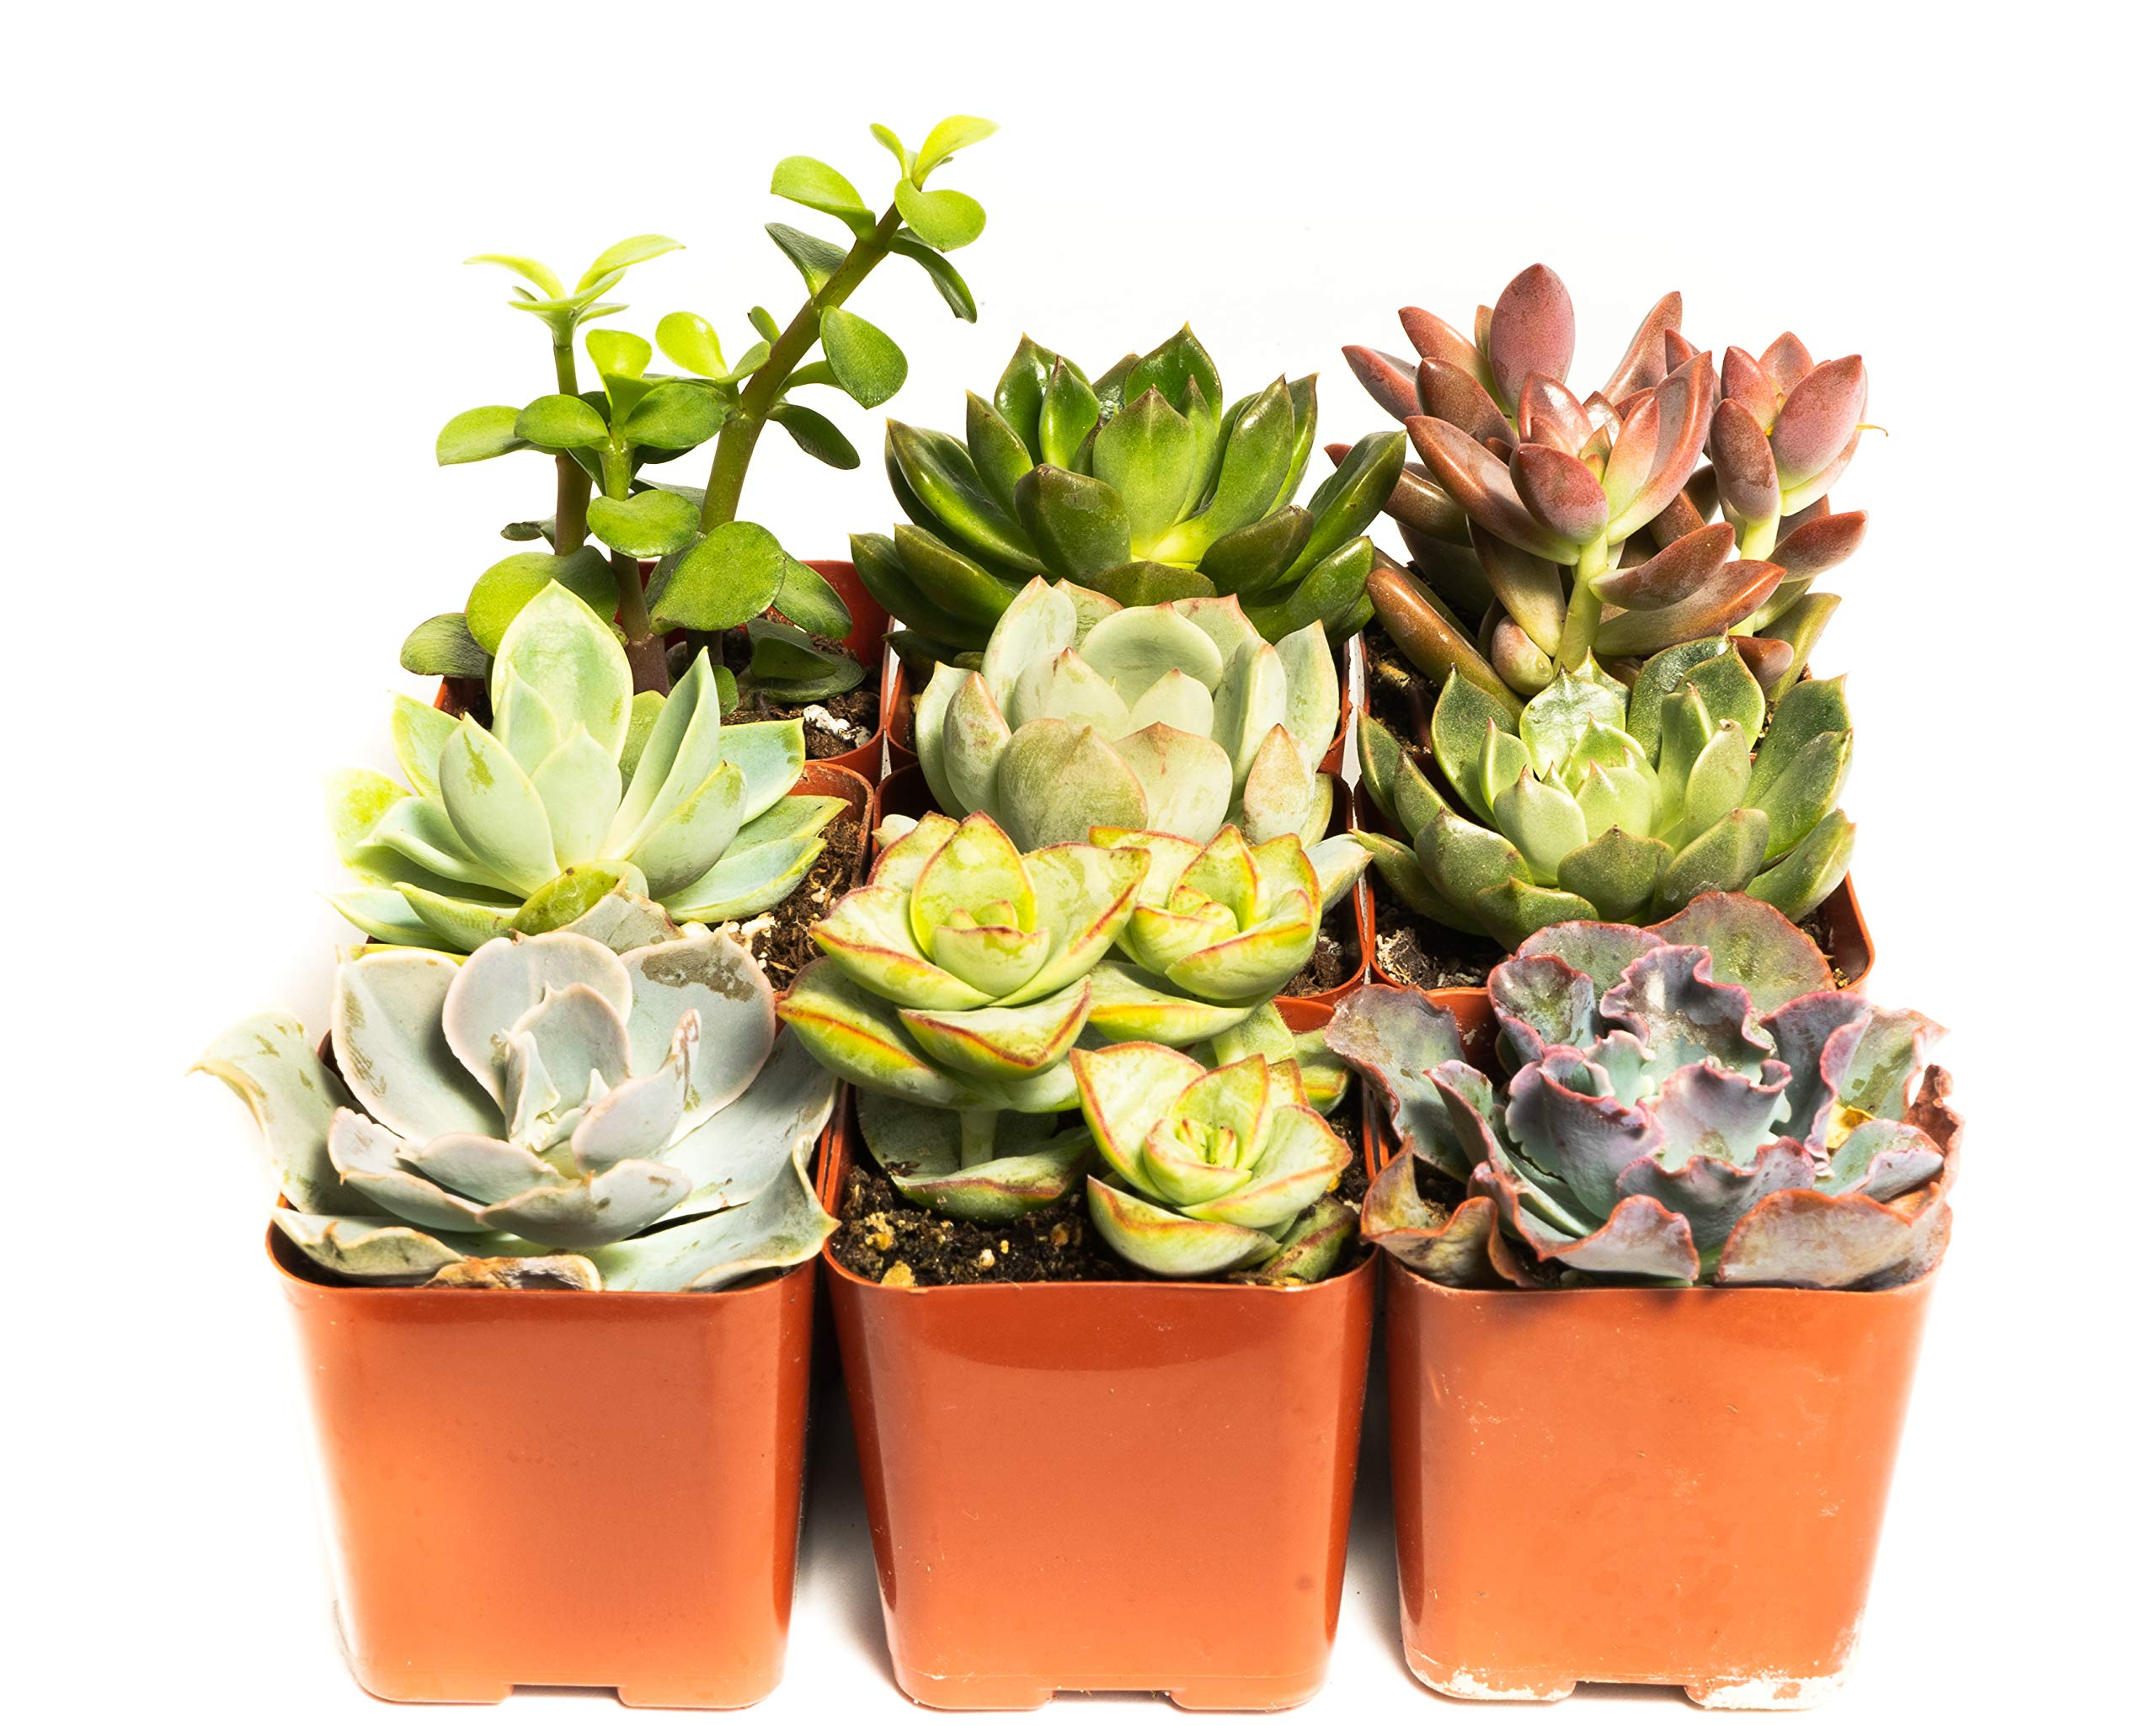 Succulent Assorted Pack- Perfect for Weddings, Party Favors, Home Gardens, and Social Events by Jiimz (15 Pack)